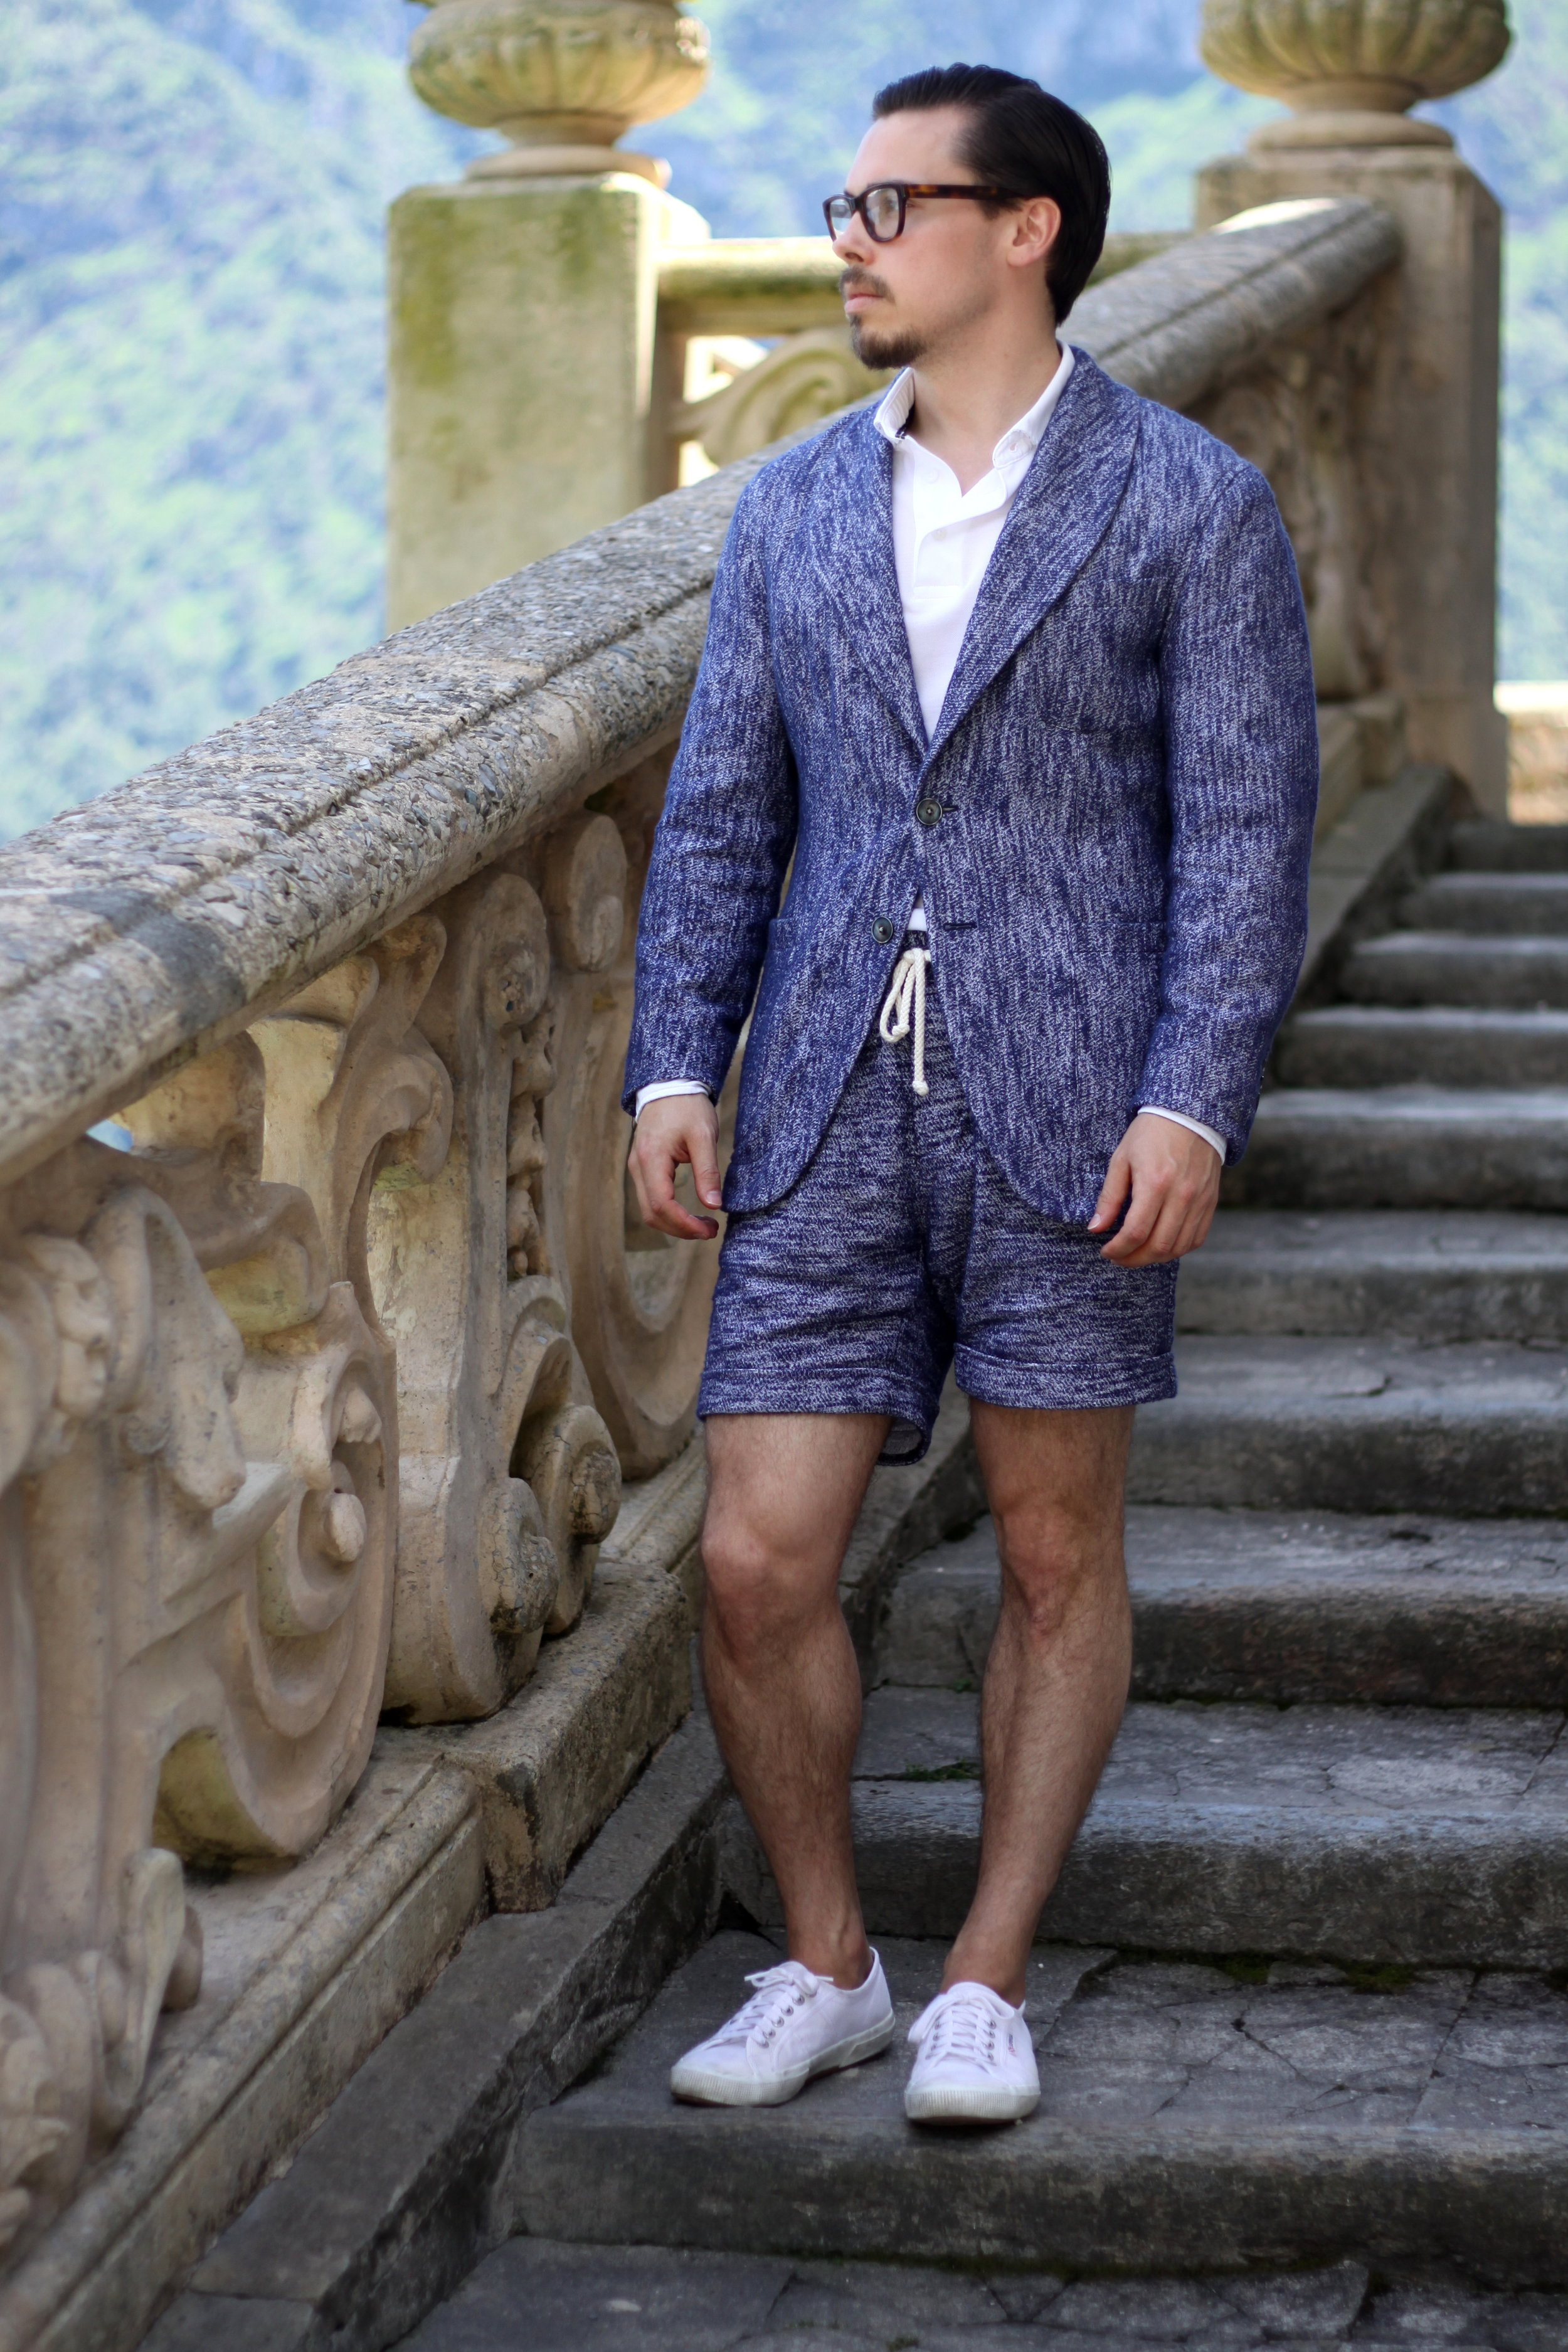 The-GIGI-shawl-collar-suit-jacket-and-shorts.jpg